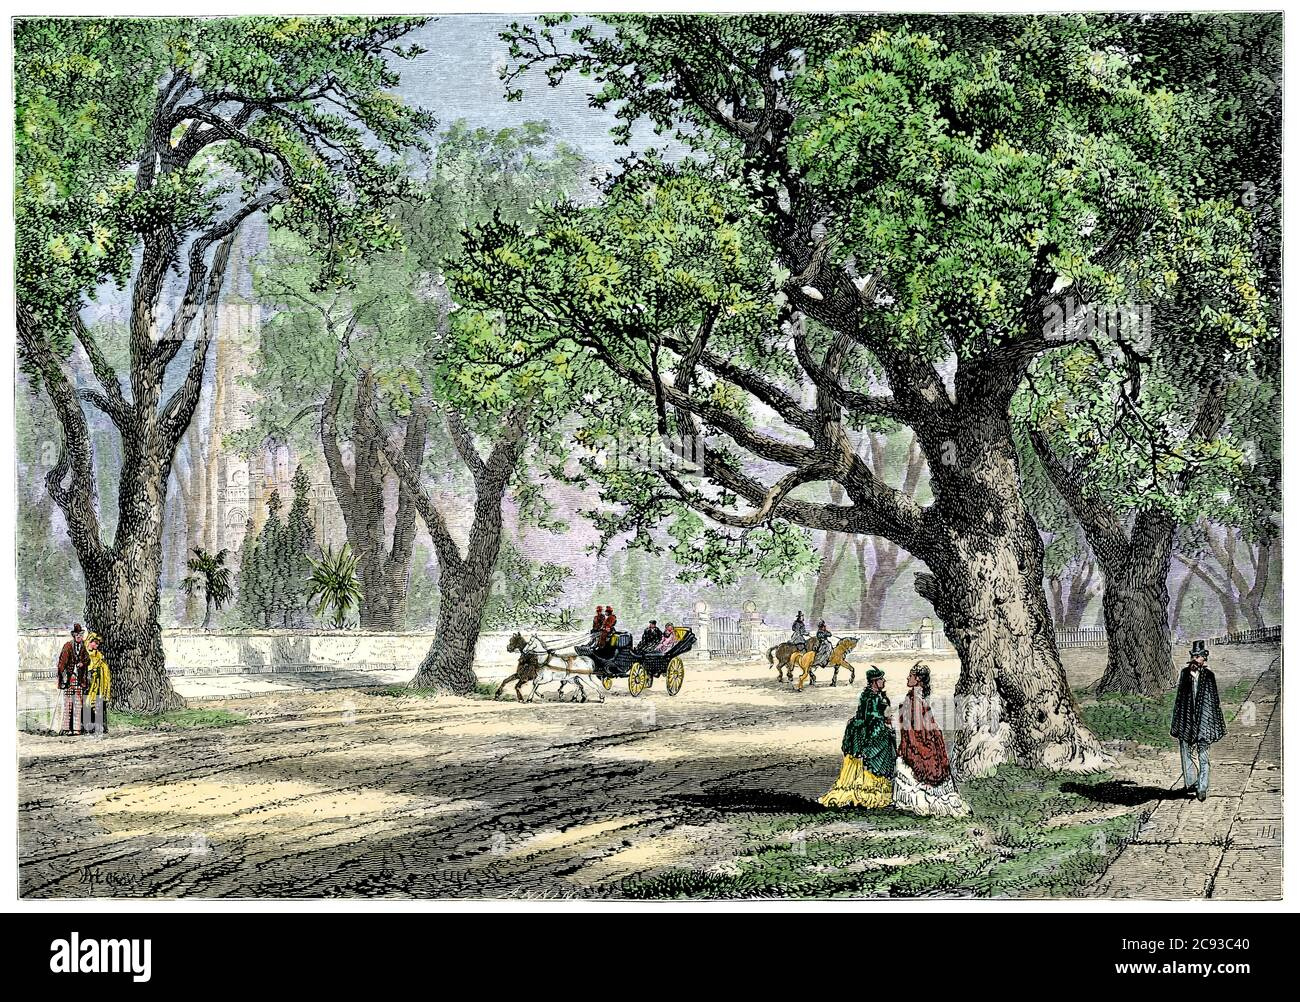 Oak-lined avenue in Oakland, California, about 1880. Hand-colored woodcut Stock Photo